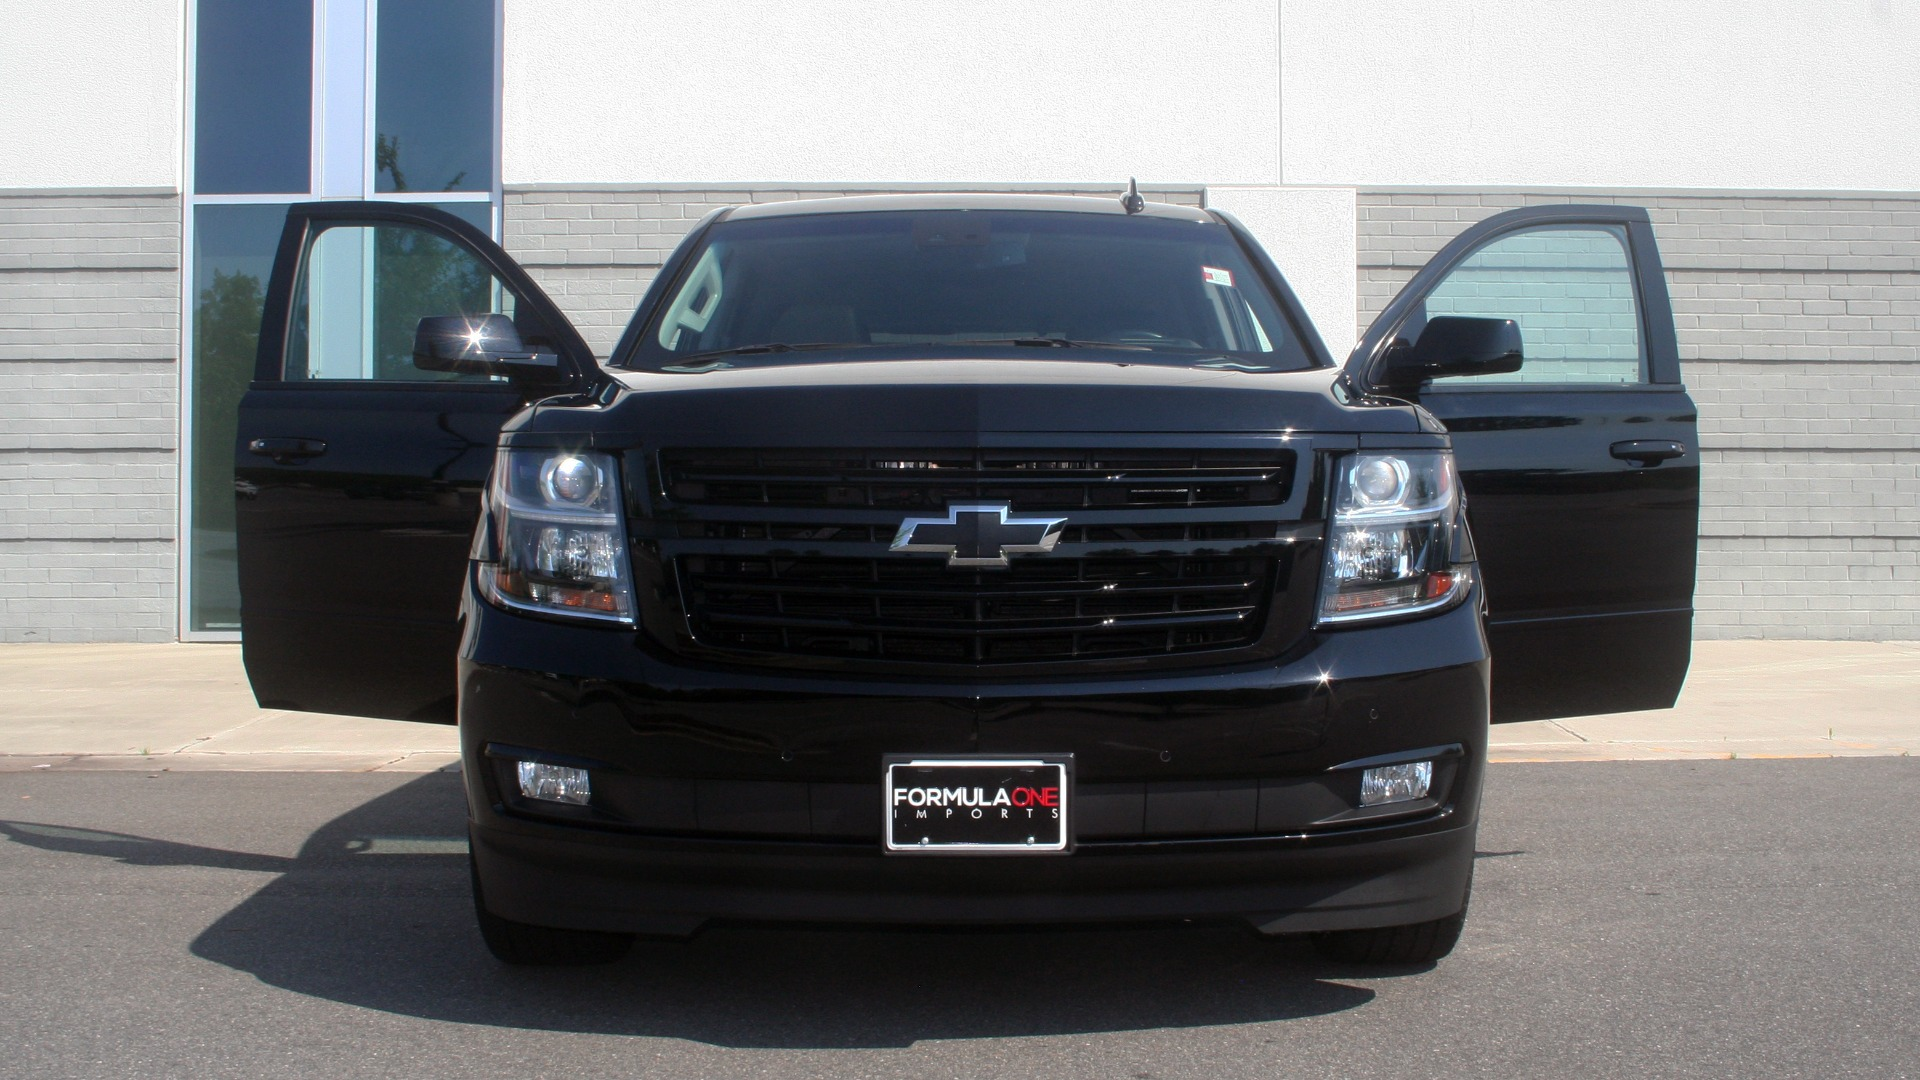 Used 2018 Chevrolet TAHOE PREMIER RST / 4X4 / NAV / BOSE / SUNROOF / 3-ROW / REARVIEW for sale $65,995 at Formula Imports in Charlotte NC 28227 12